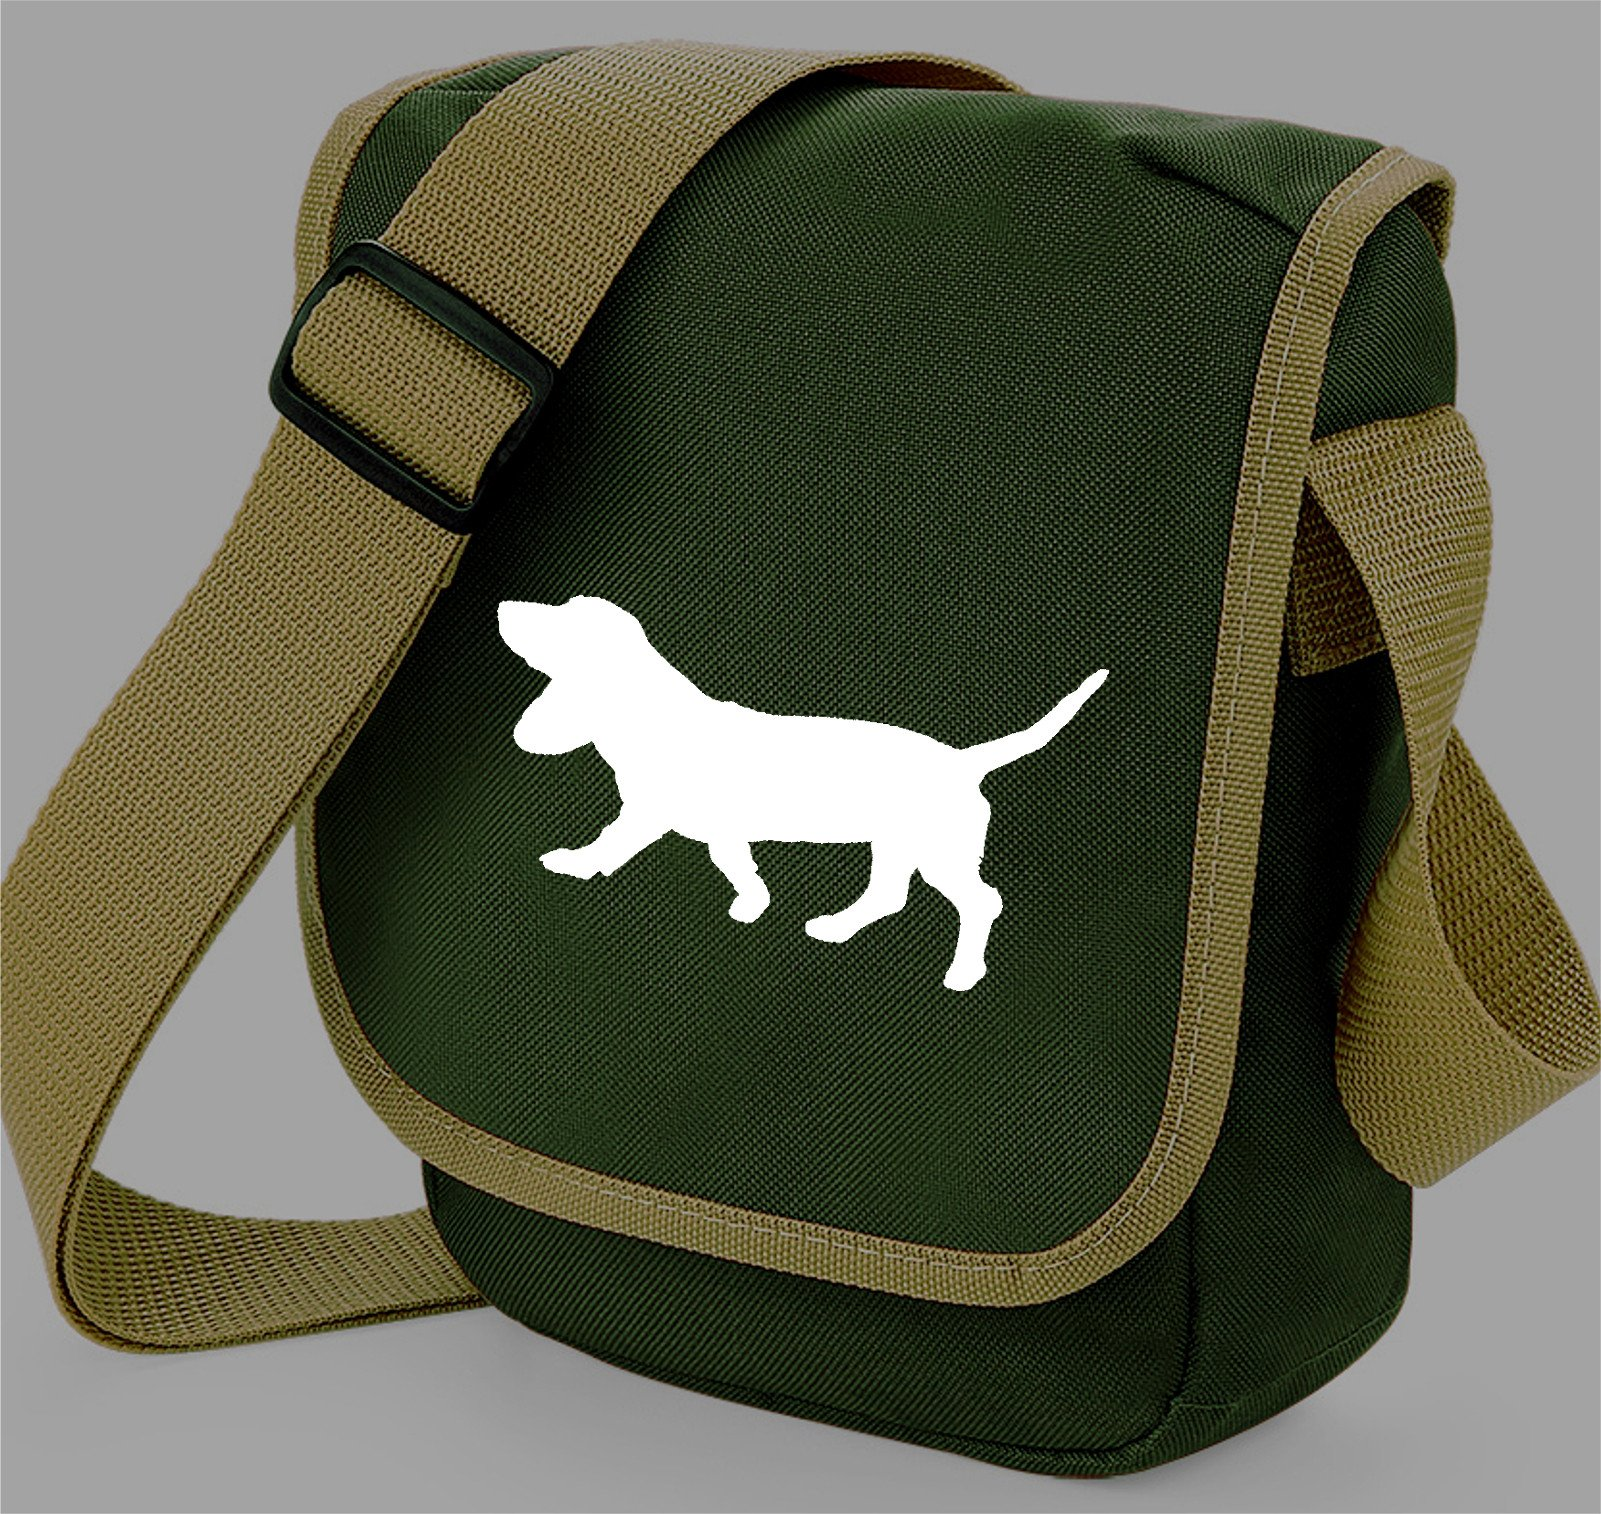 Basset Hound Dog Bag Reporter Bag Shoulder Bag Basset Silhouette Basset Hound Gift Choice of Colours